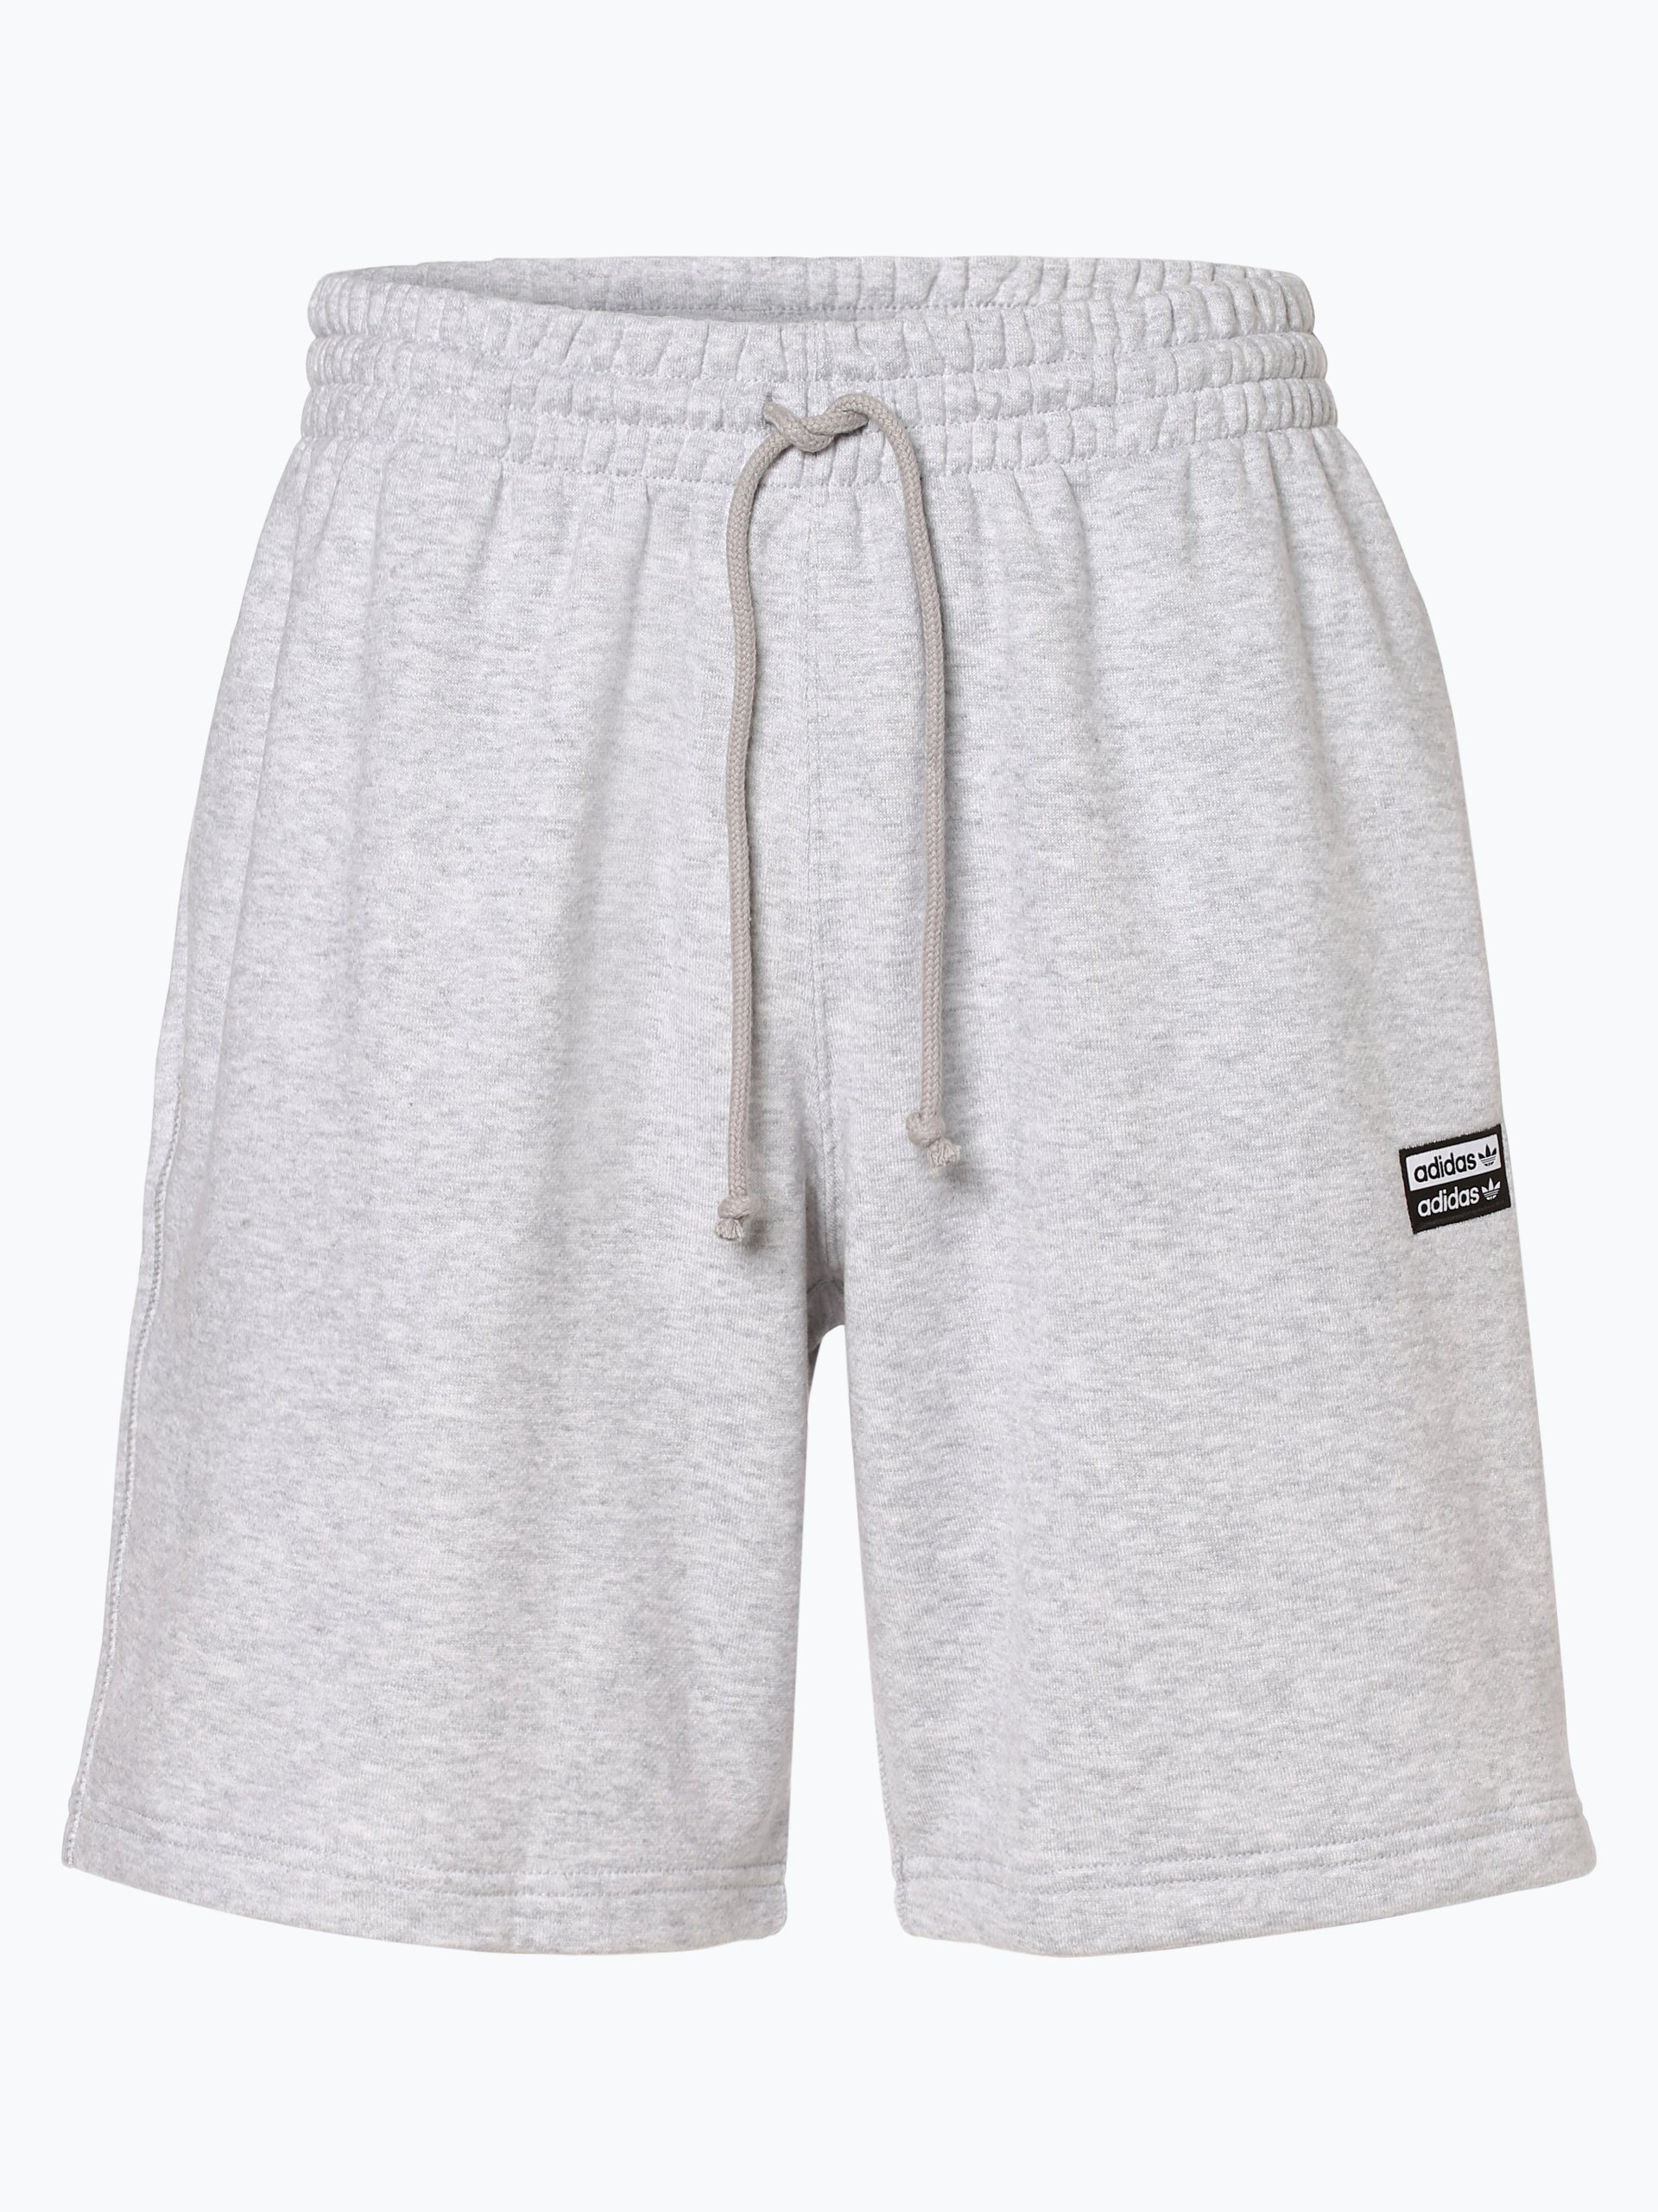 adidas Originals Herren Shorts